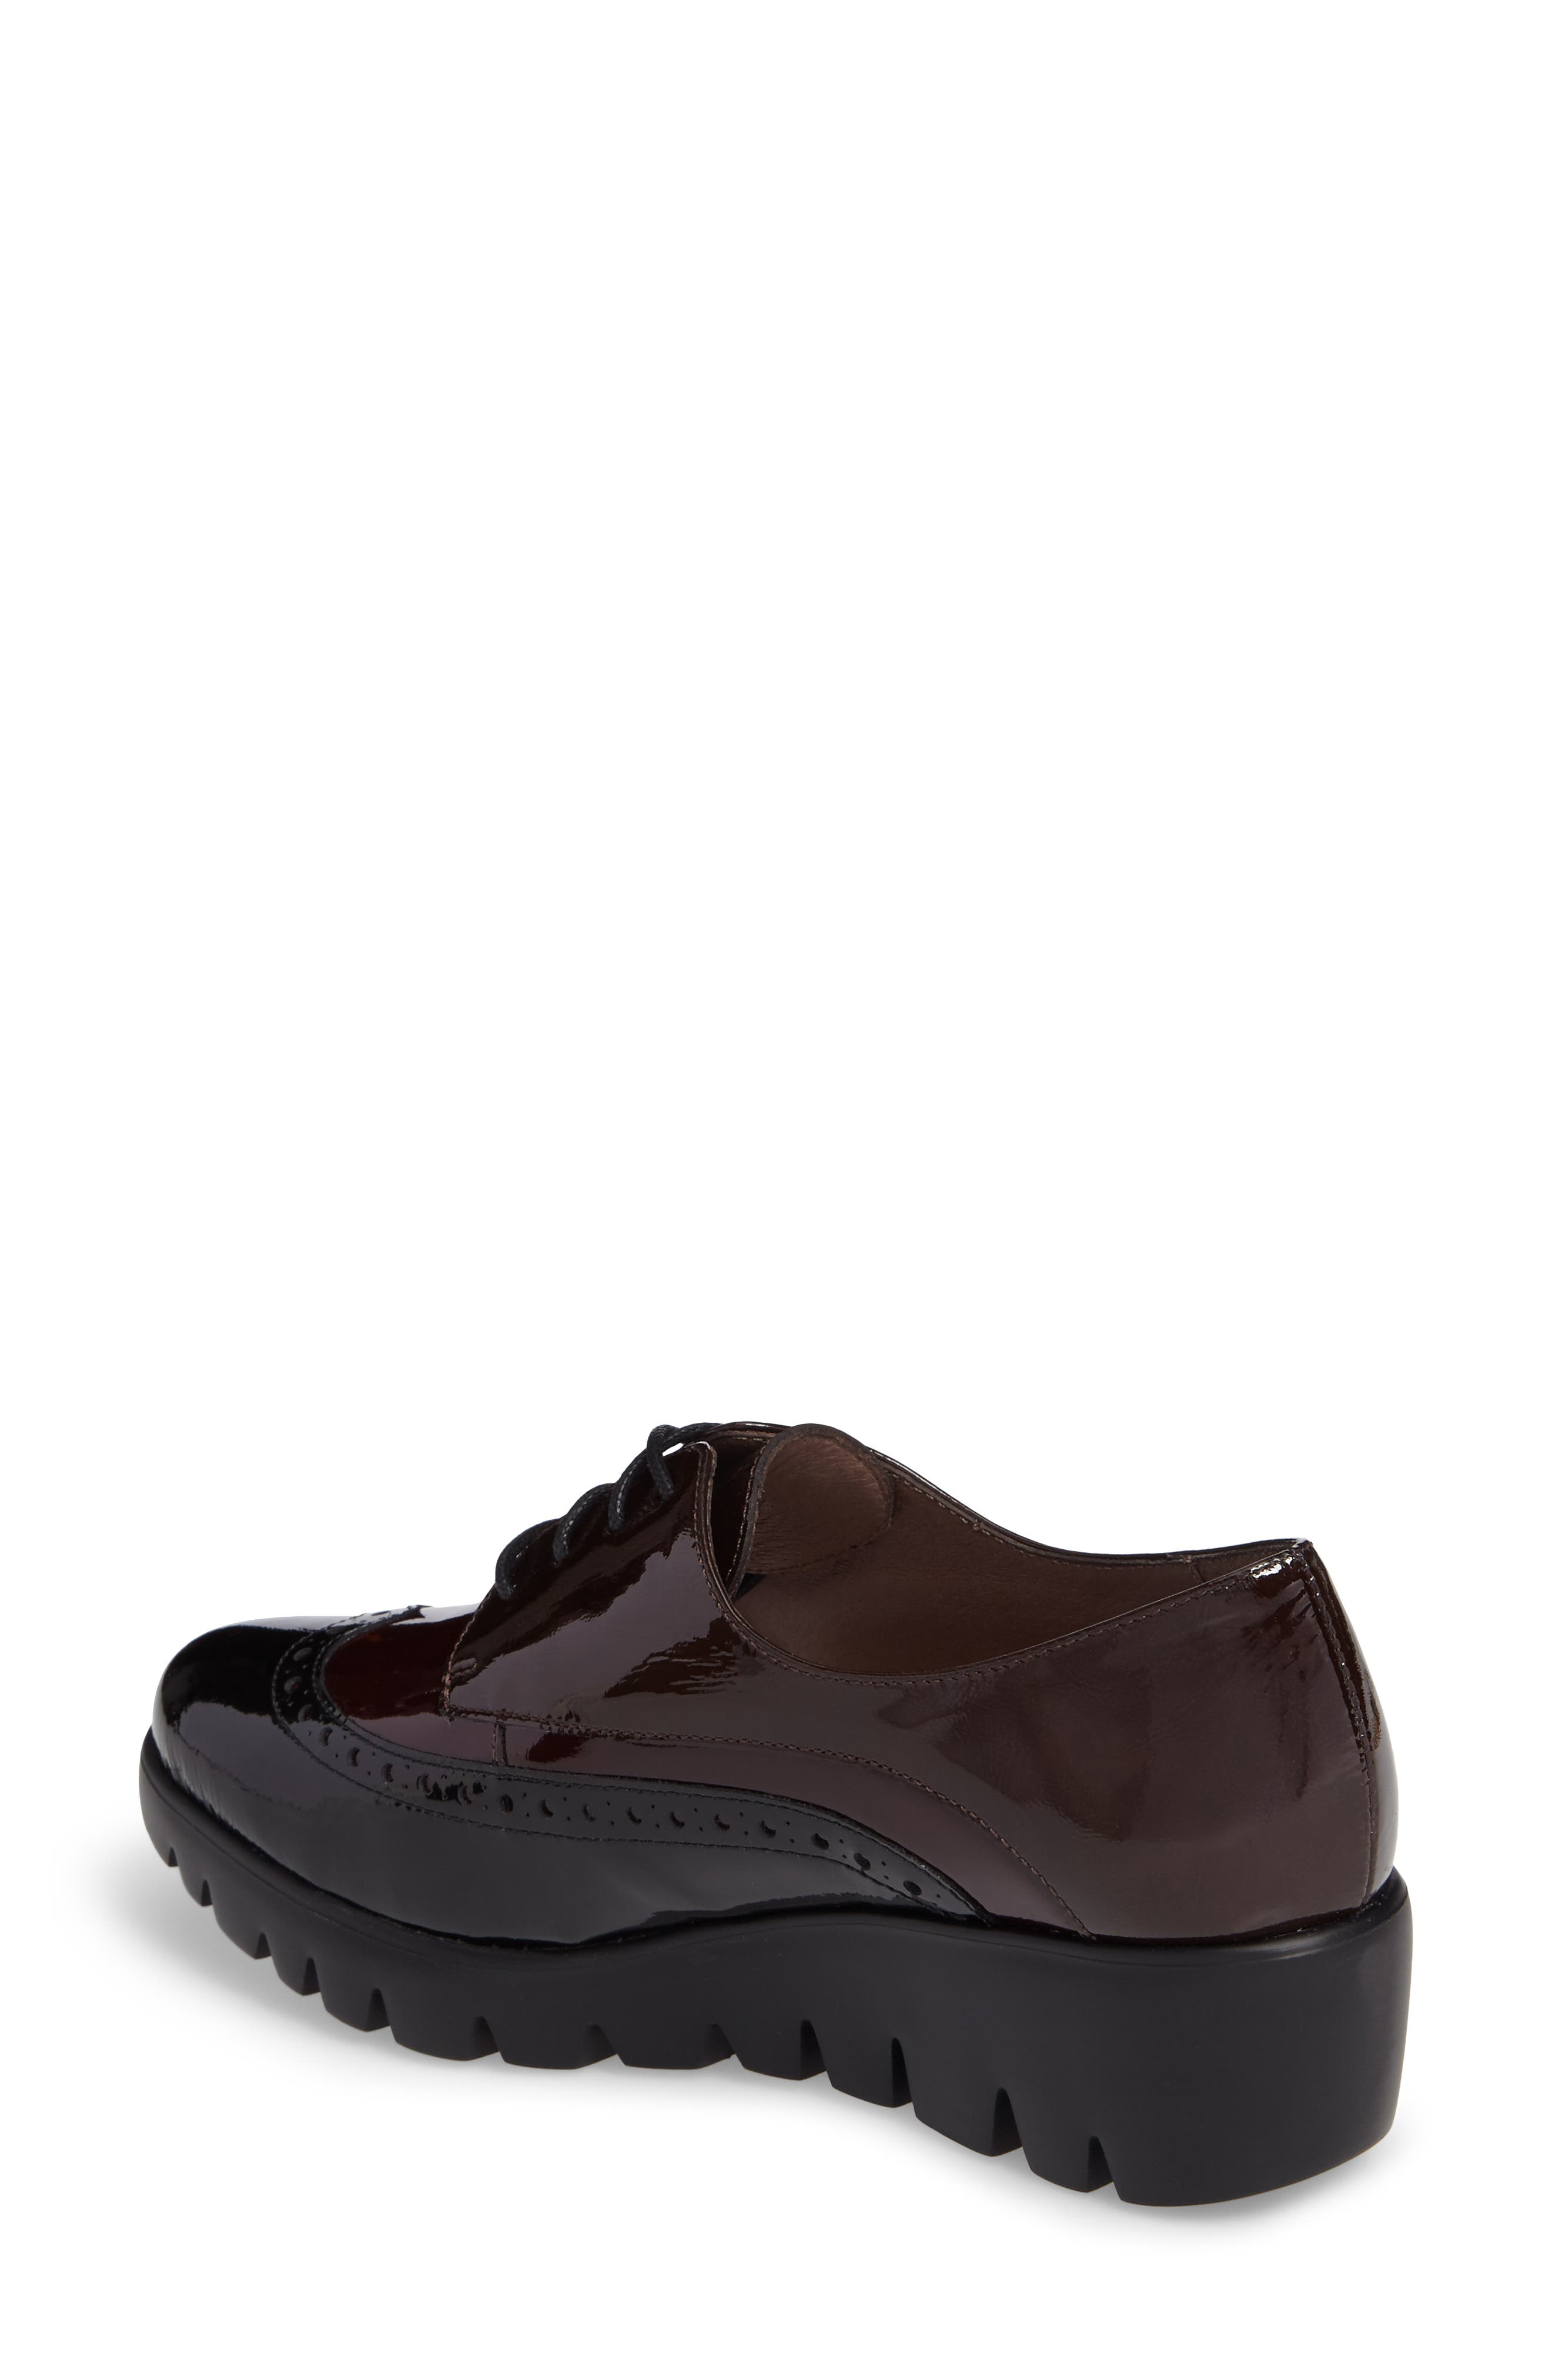 Wedge Wingtip Derby,                             Alternate thumbnail 2, color,                             Black/ Bordo Patent Leather